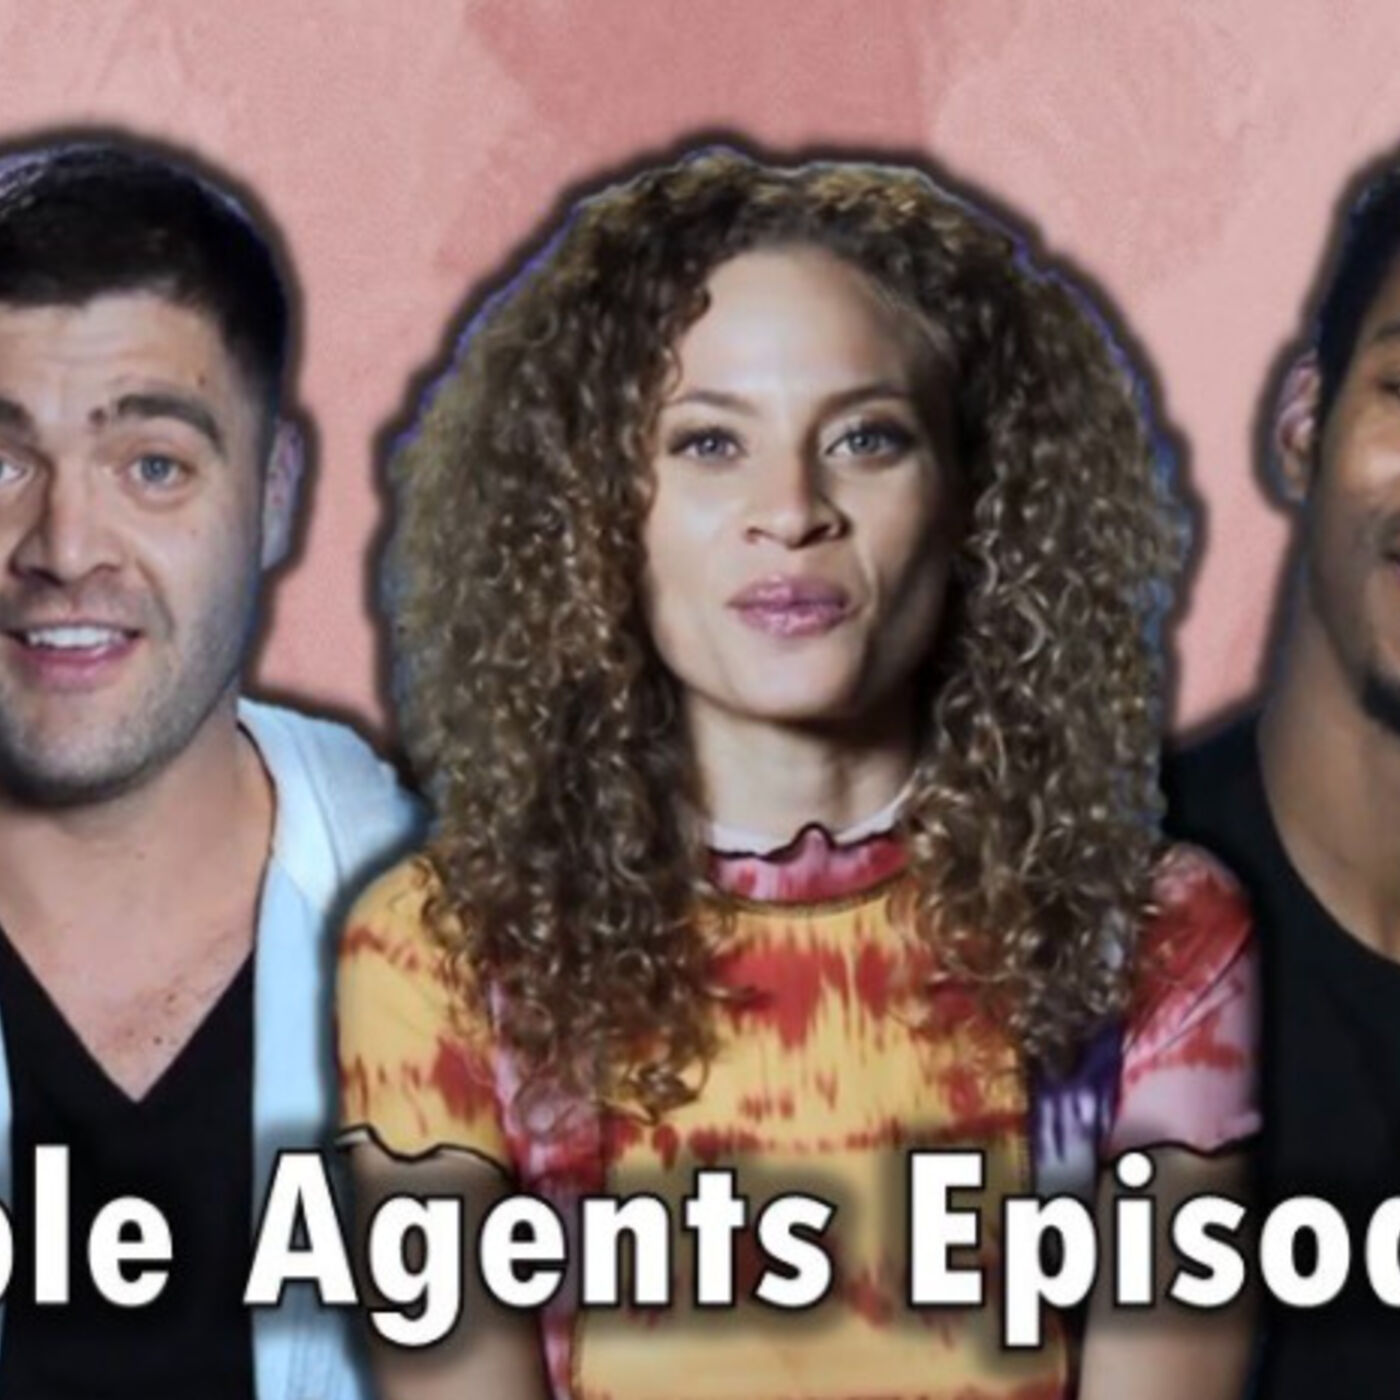 The Challenge Double Agents Episode 19 Recap: That's All Folks!